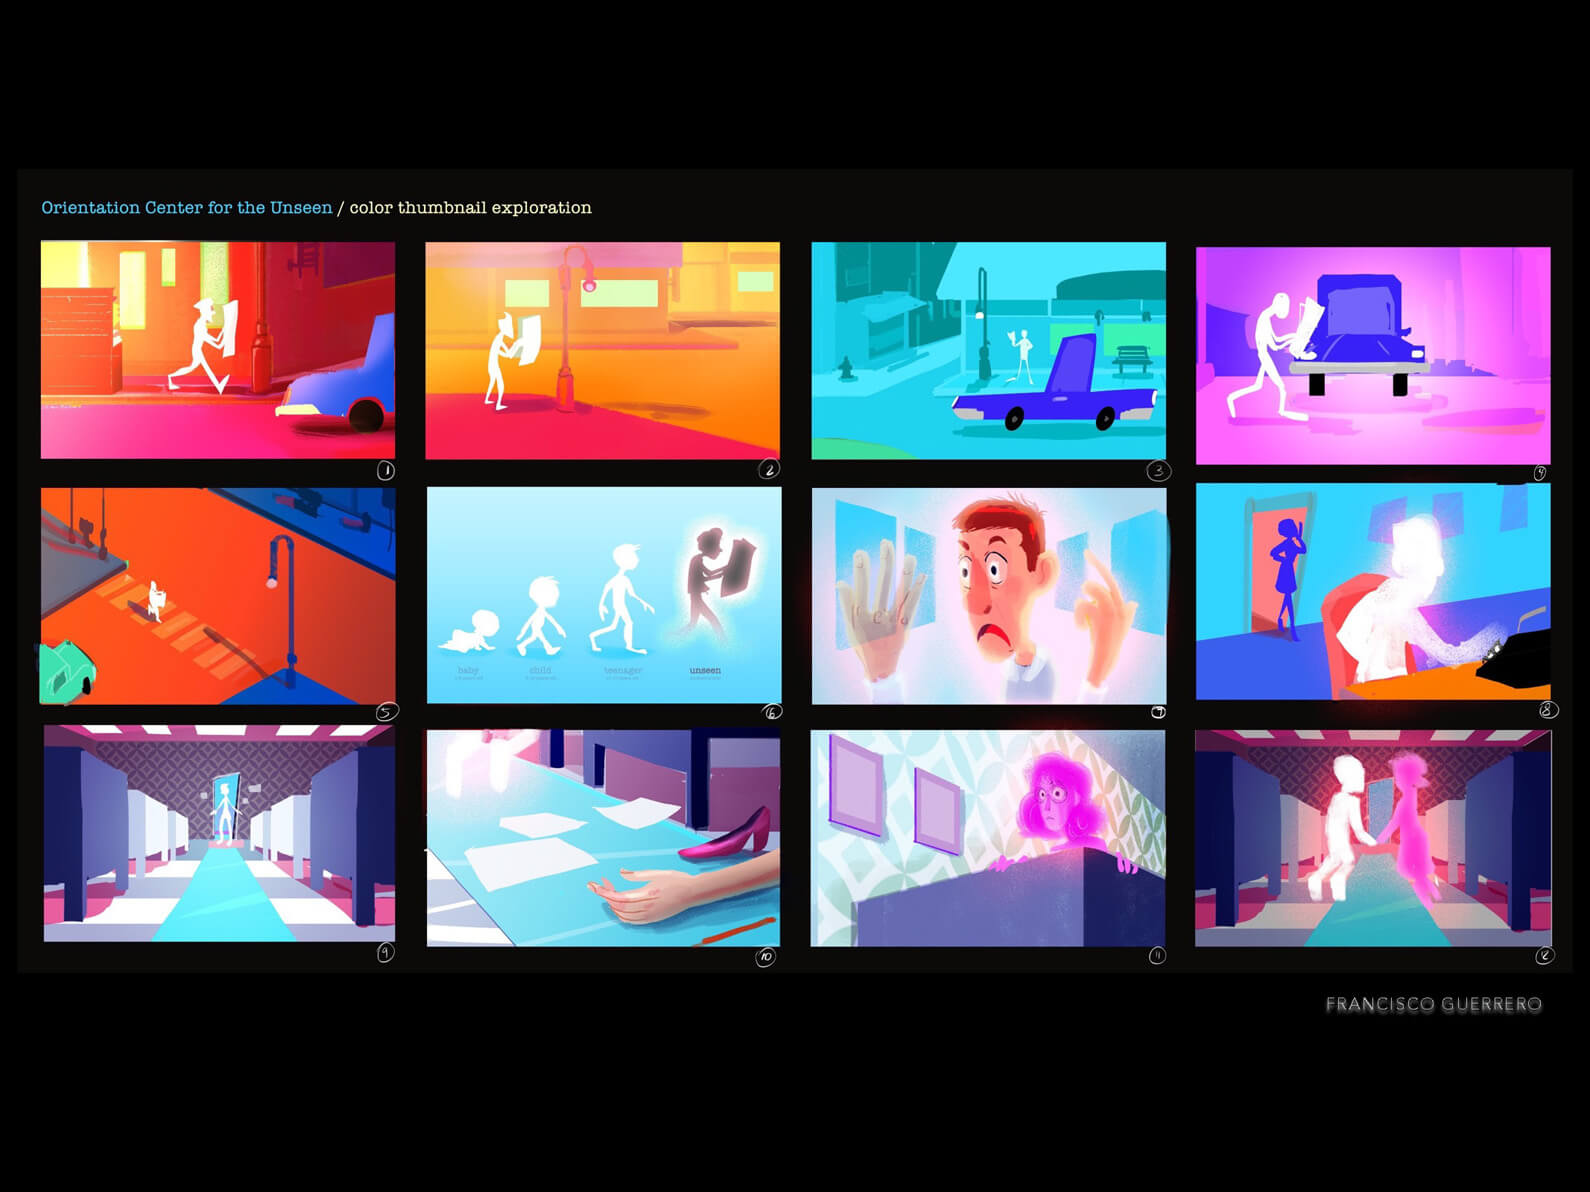 Color thumbnail exploration board for Orientation Center for the Unseen with initial plot, in a vibrant color palette